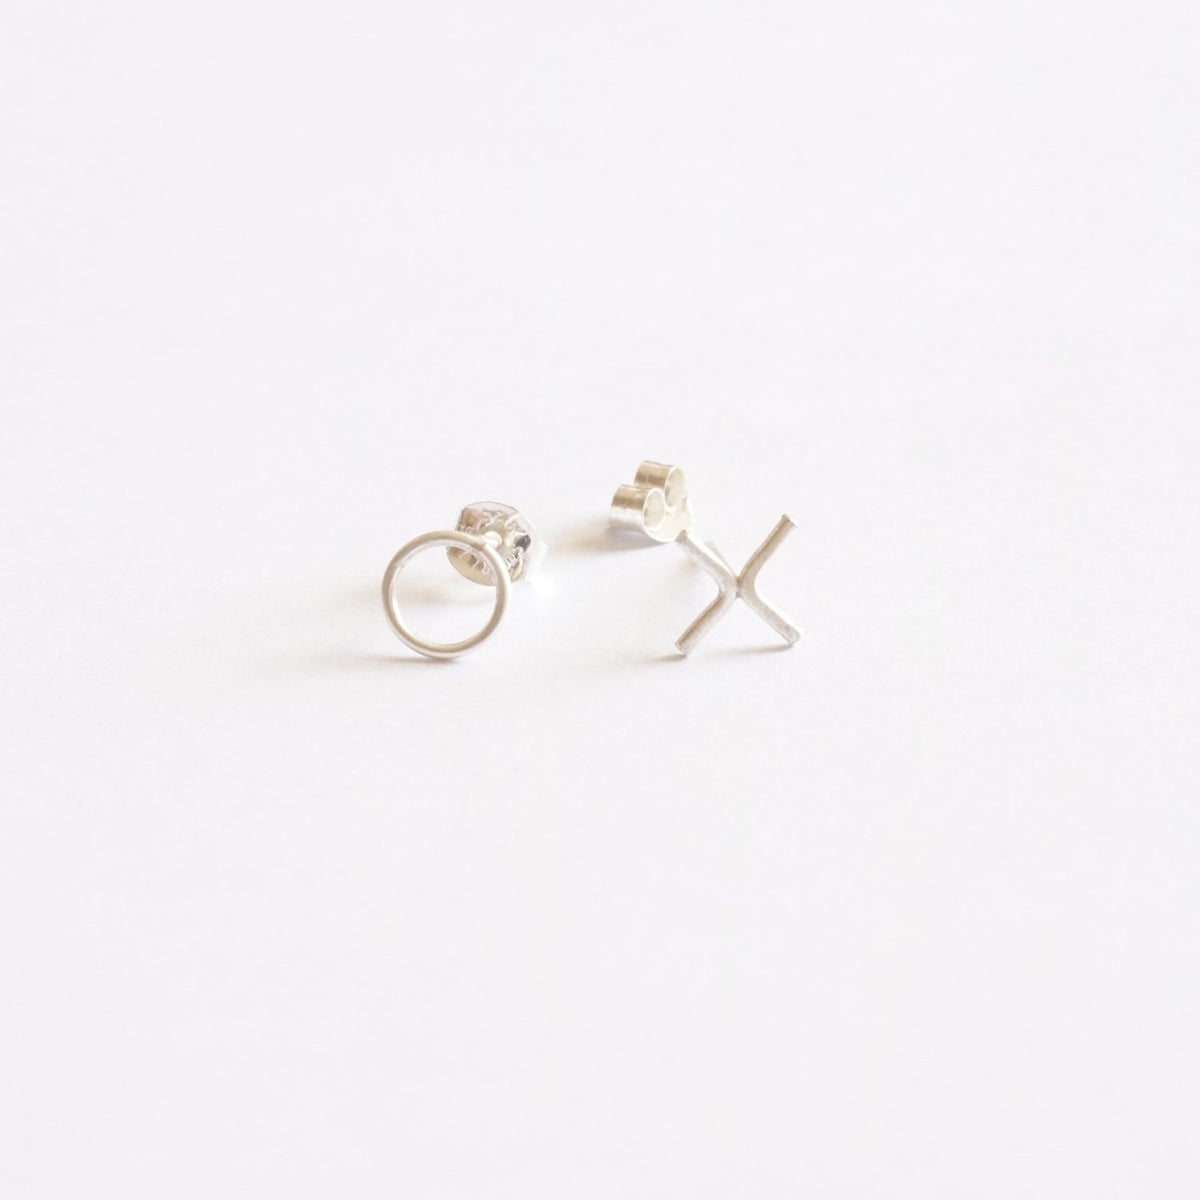 Fun and Cool Hugs and Kisses (X's & O's) stud earrings - 0251 - Virginia Wynne Designs